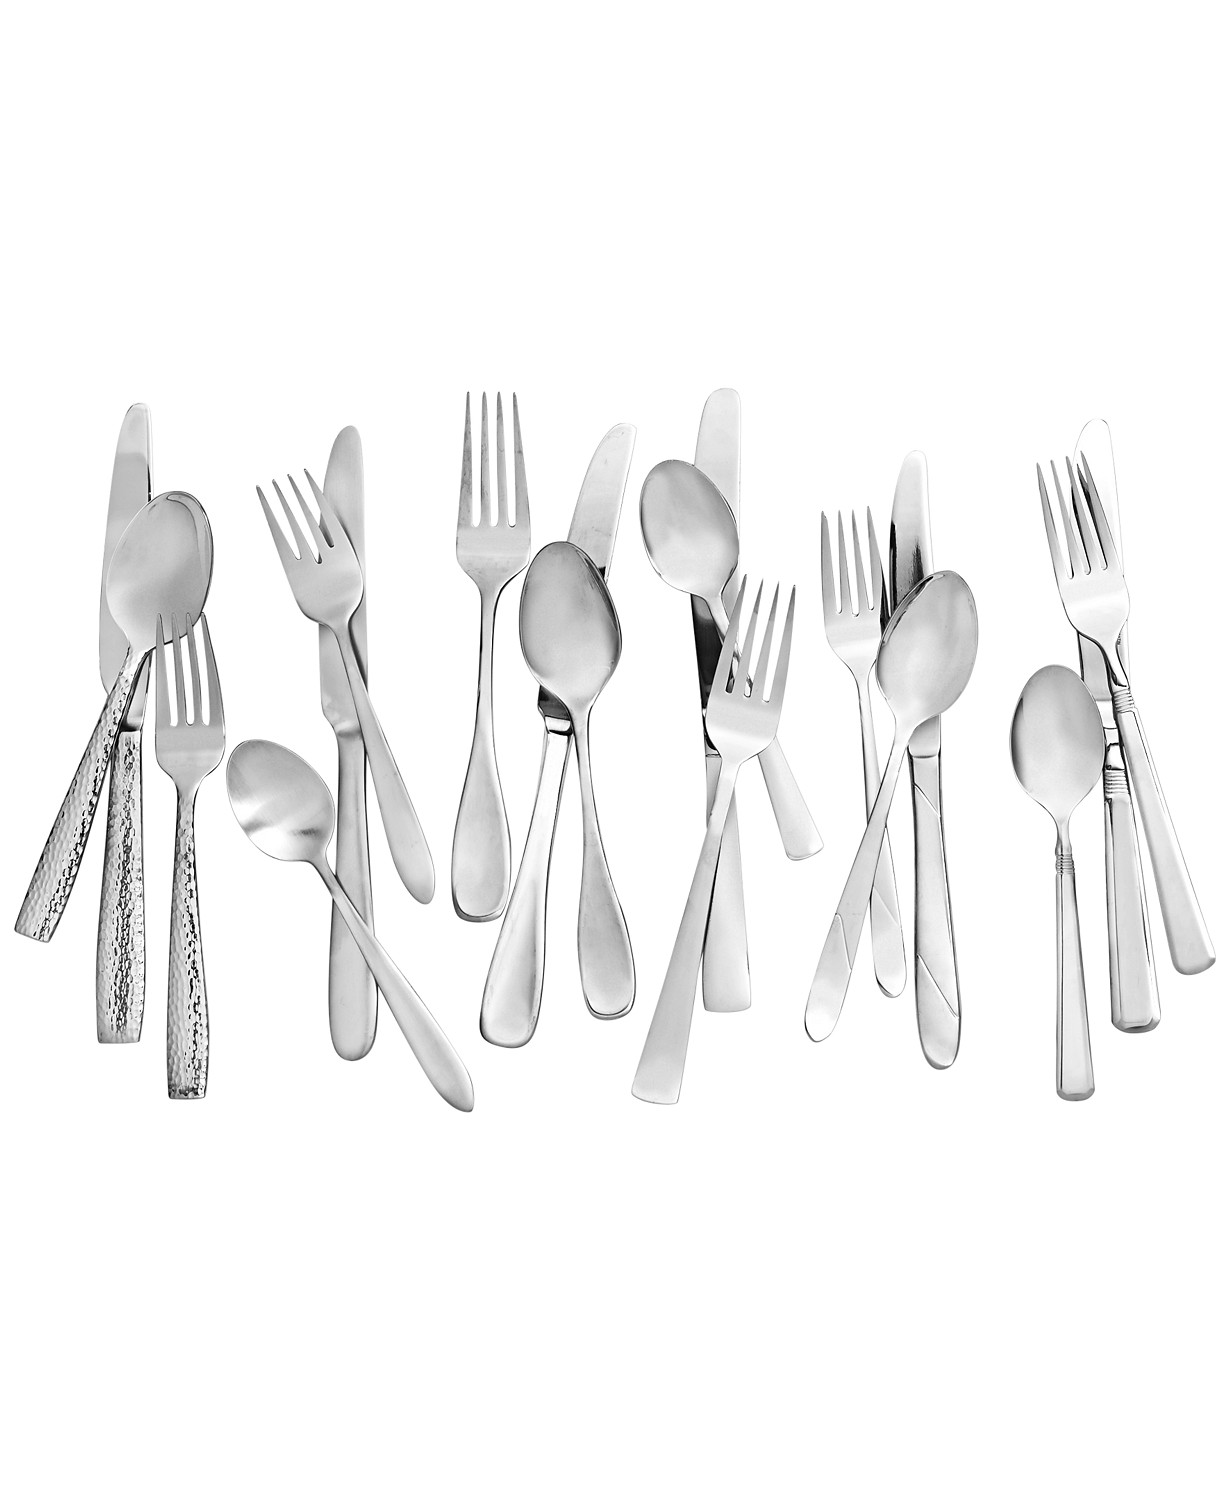 Oneida Avery 78-Pc. Flatware Set, Service for 12, Created for Macy's & Reviews - Flatware - Dining - Macy's